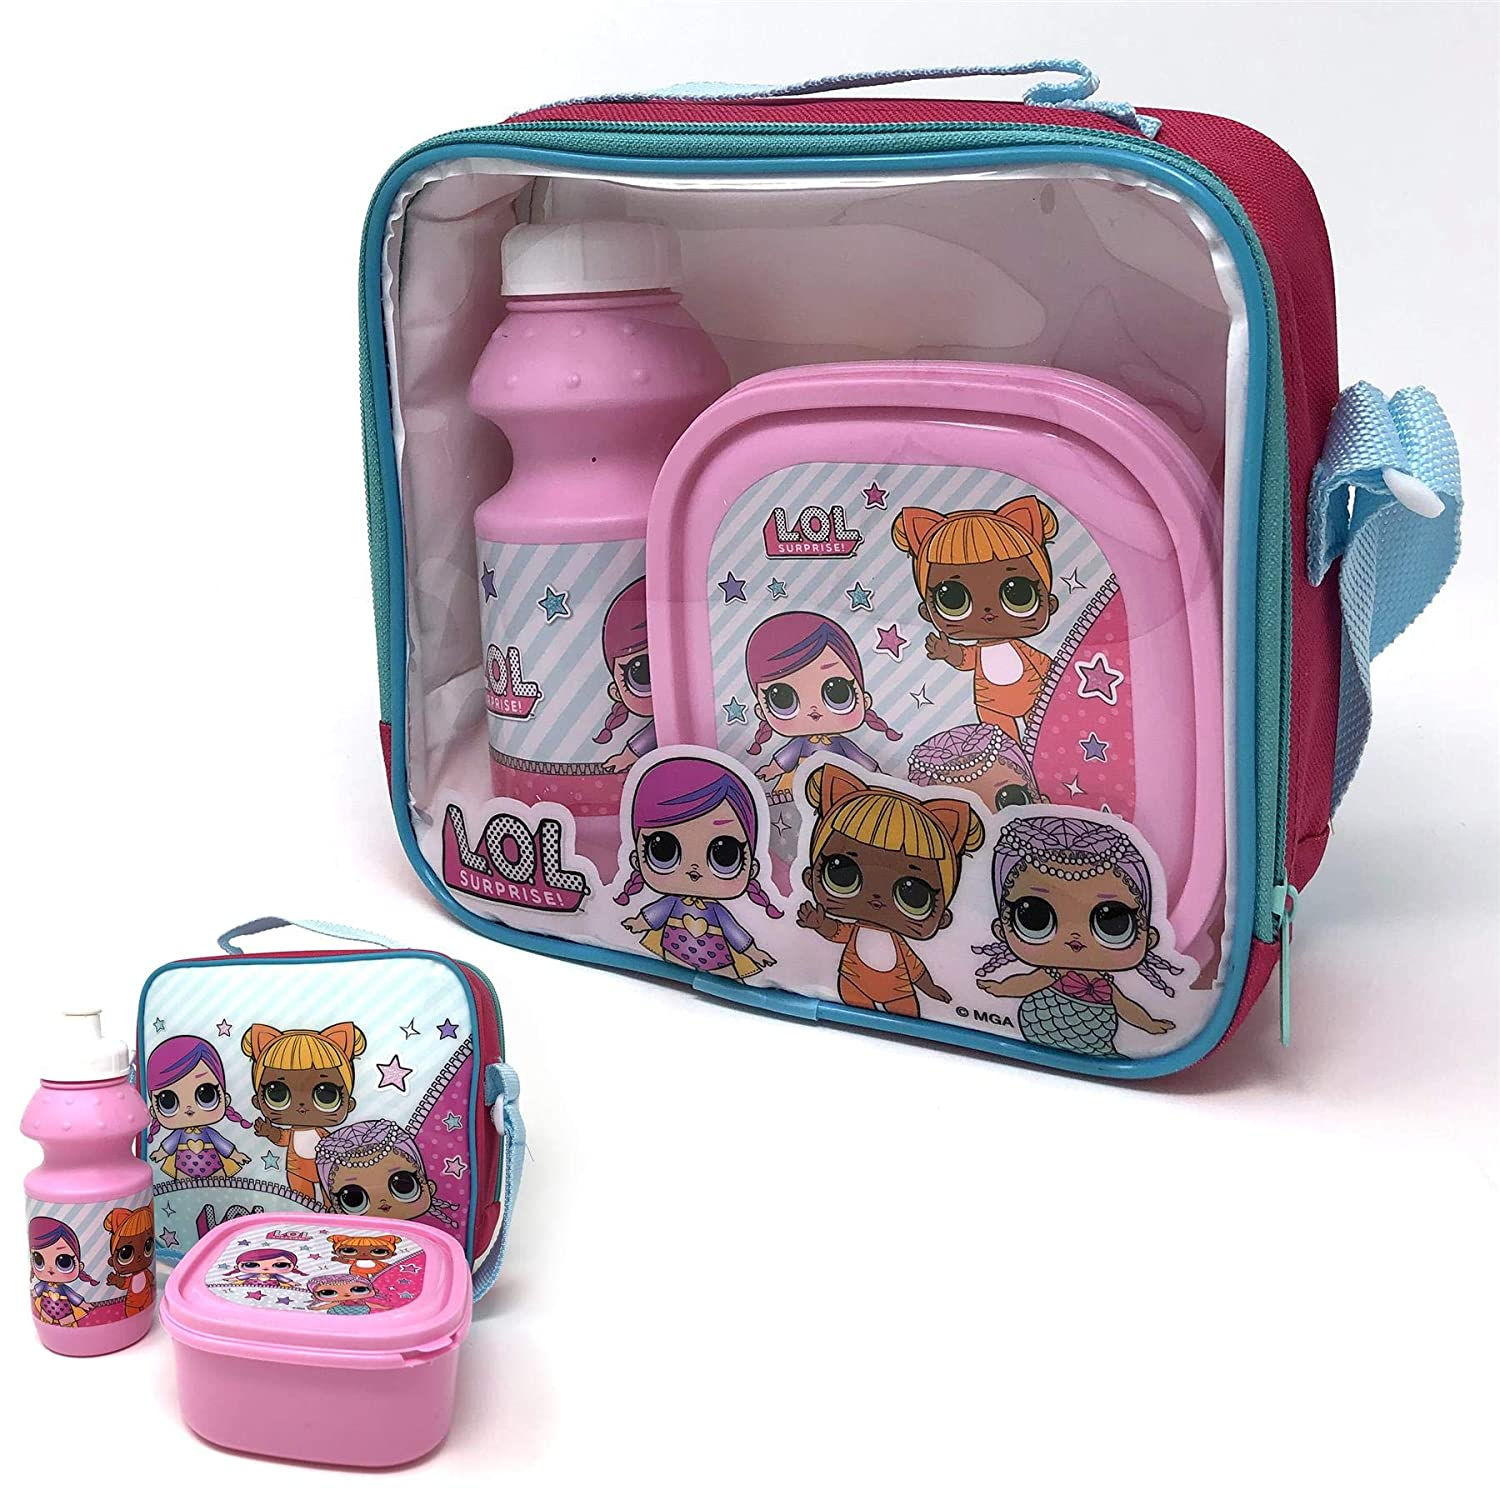 LOL Surprise Insulated School Travel Lunch Bag Lunch Box